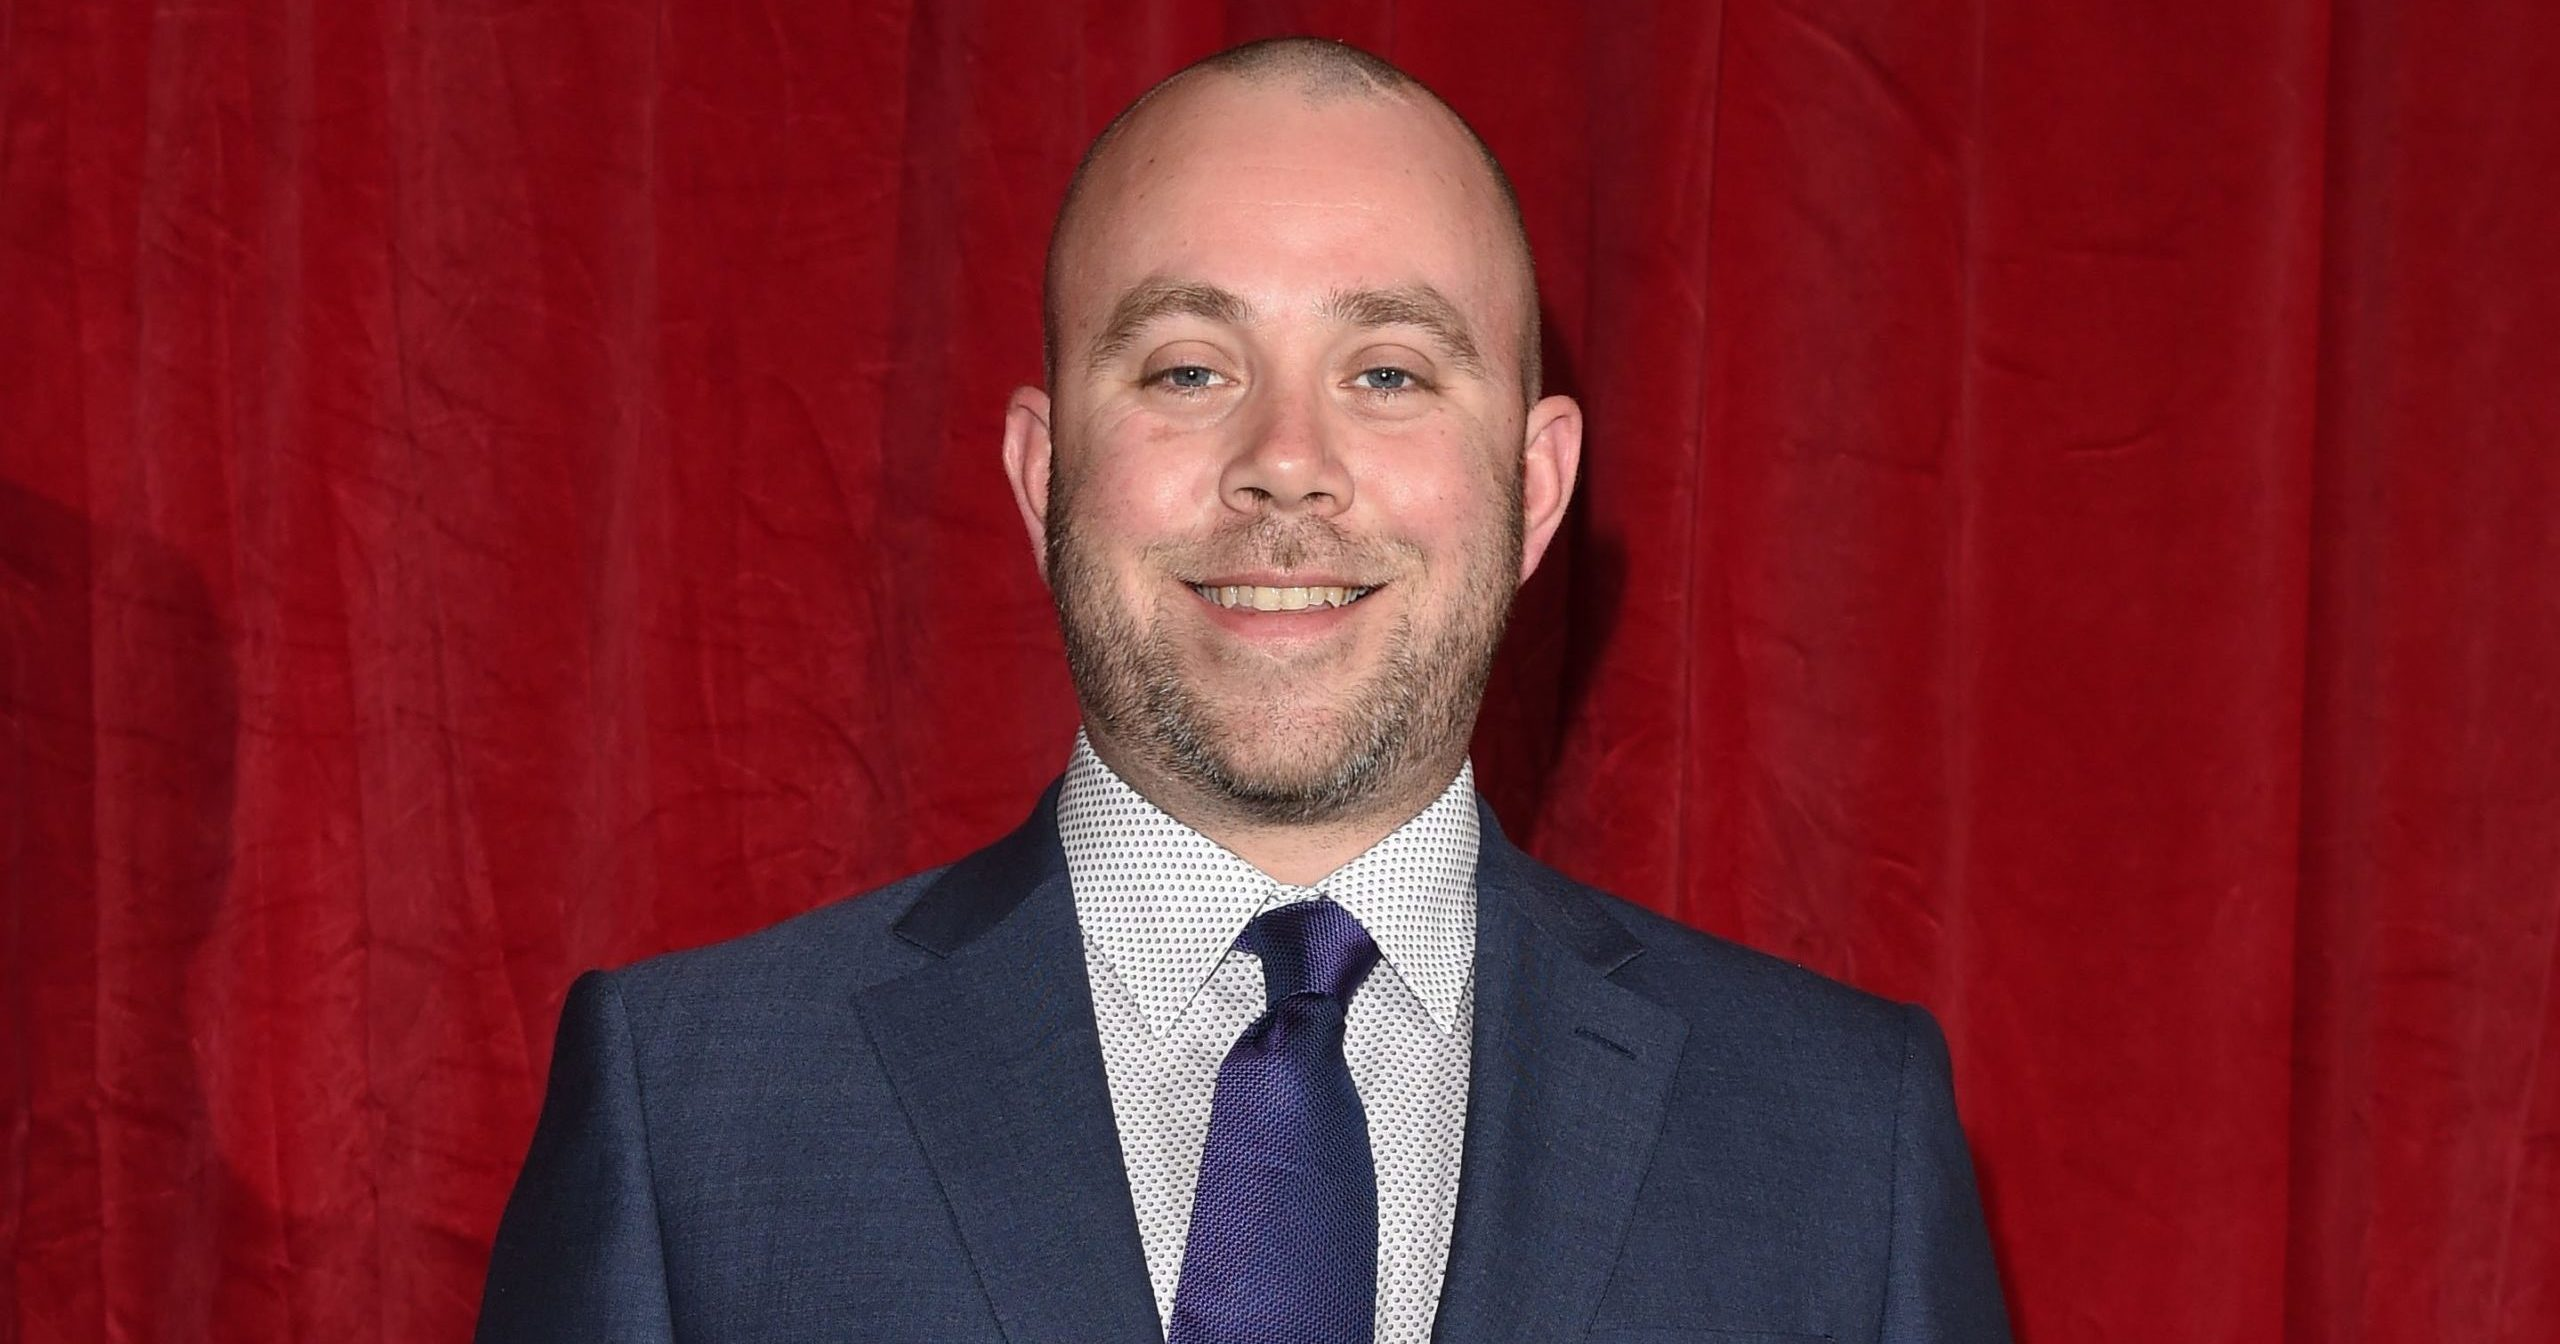 Coronation Street boss Iain MacLeod reveals fed up fans stop him in public to give feedback on soap